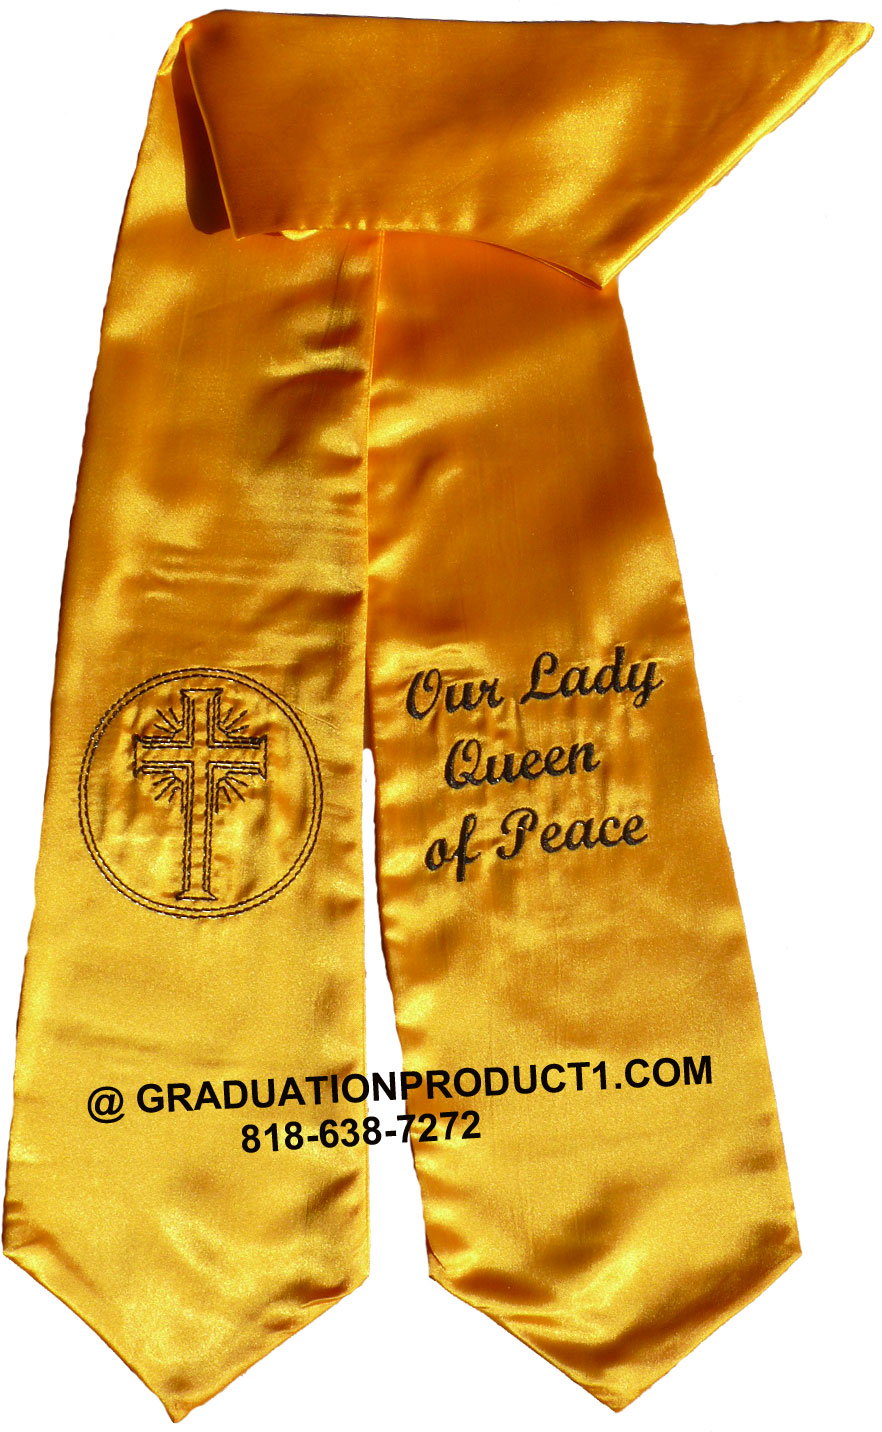 Our Lady Queen Of Peace Gold Graduation Stole With Logo